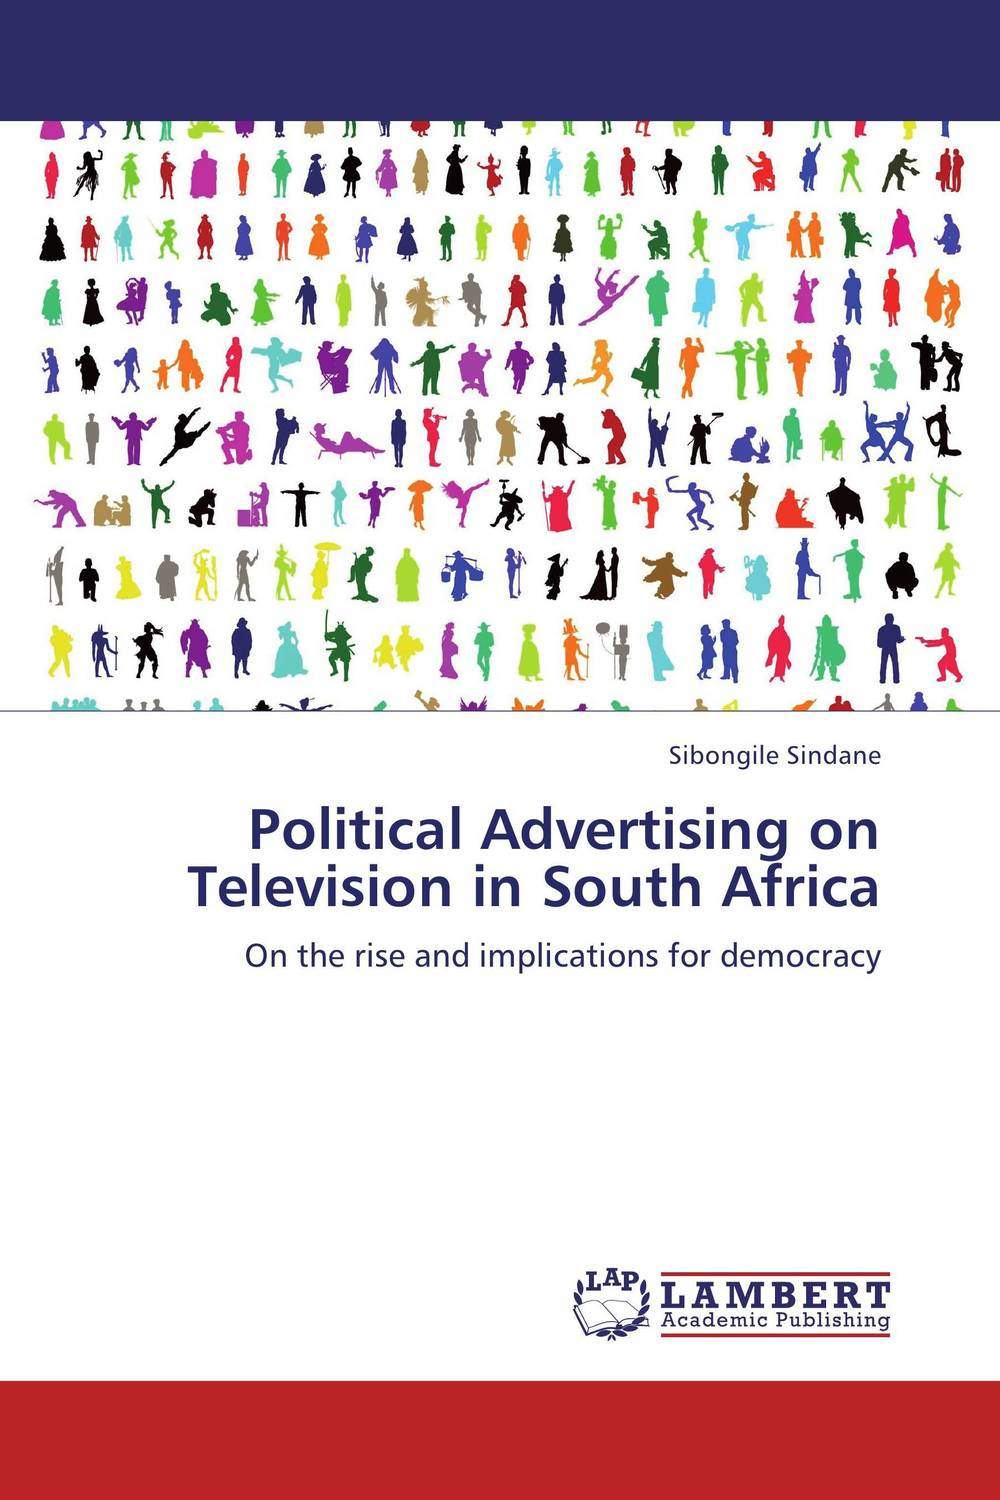 Political Advertising on Television in South Africa globalization its challenges on democracy and effects on africa